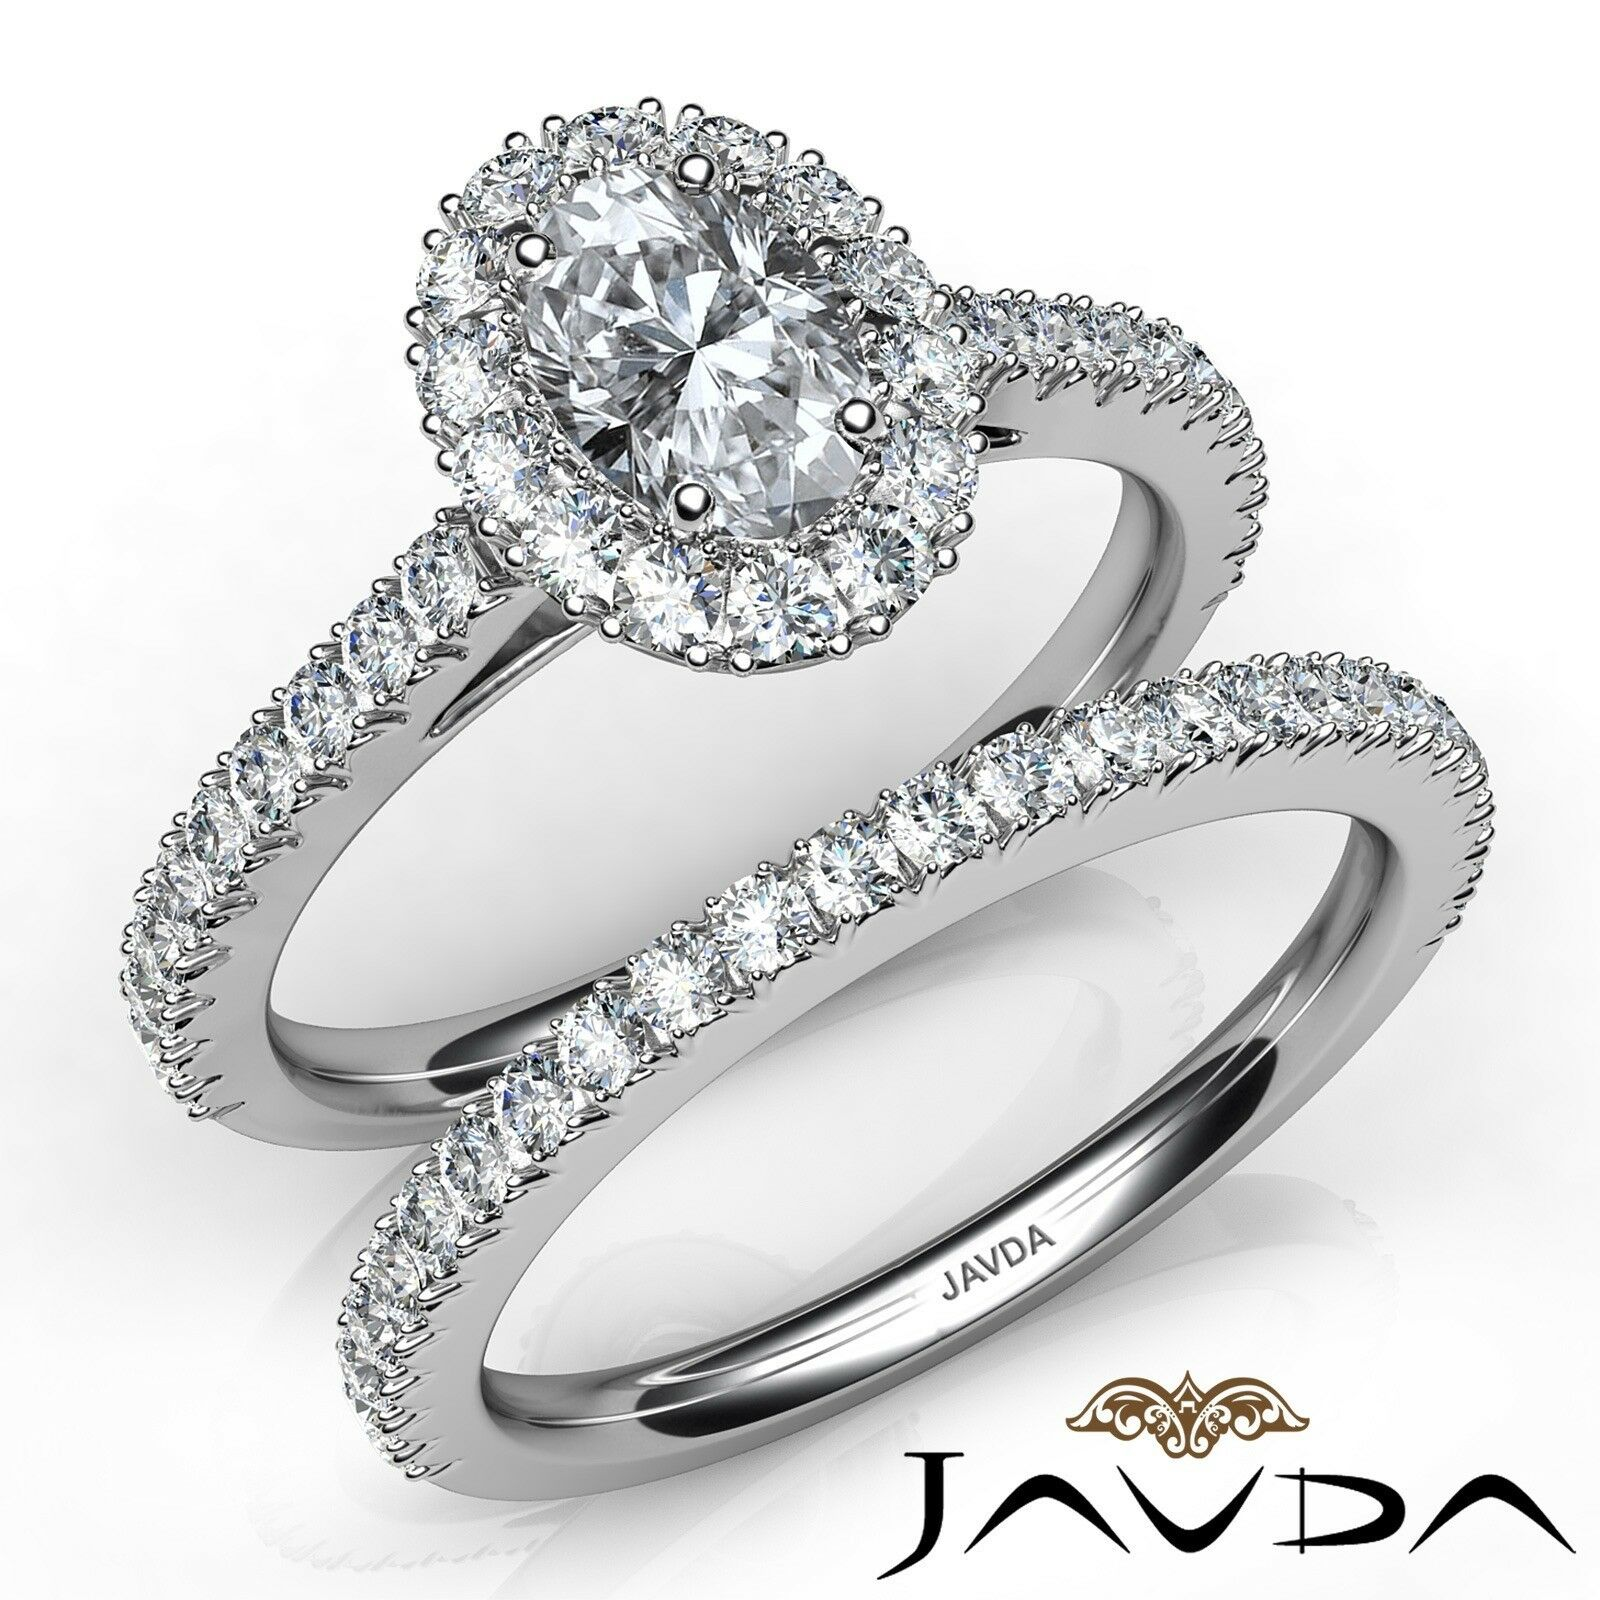 2.21ctw Halo Bridal French Pave Oval Diamond Engagement Ring GIA F-VVS2 W Gold